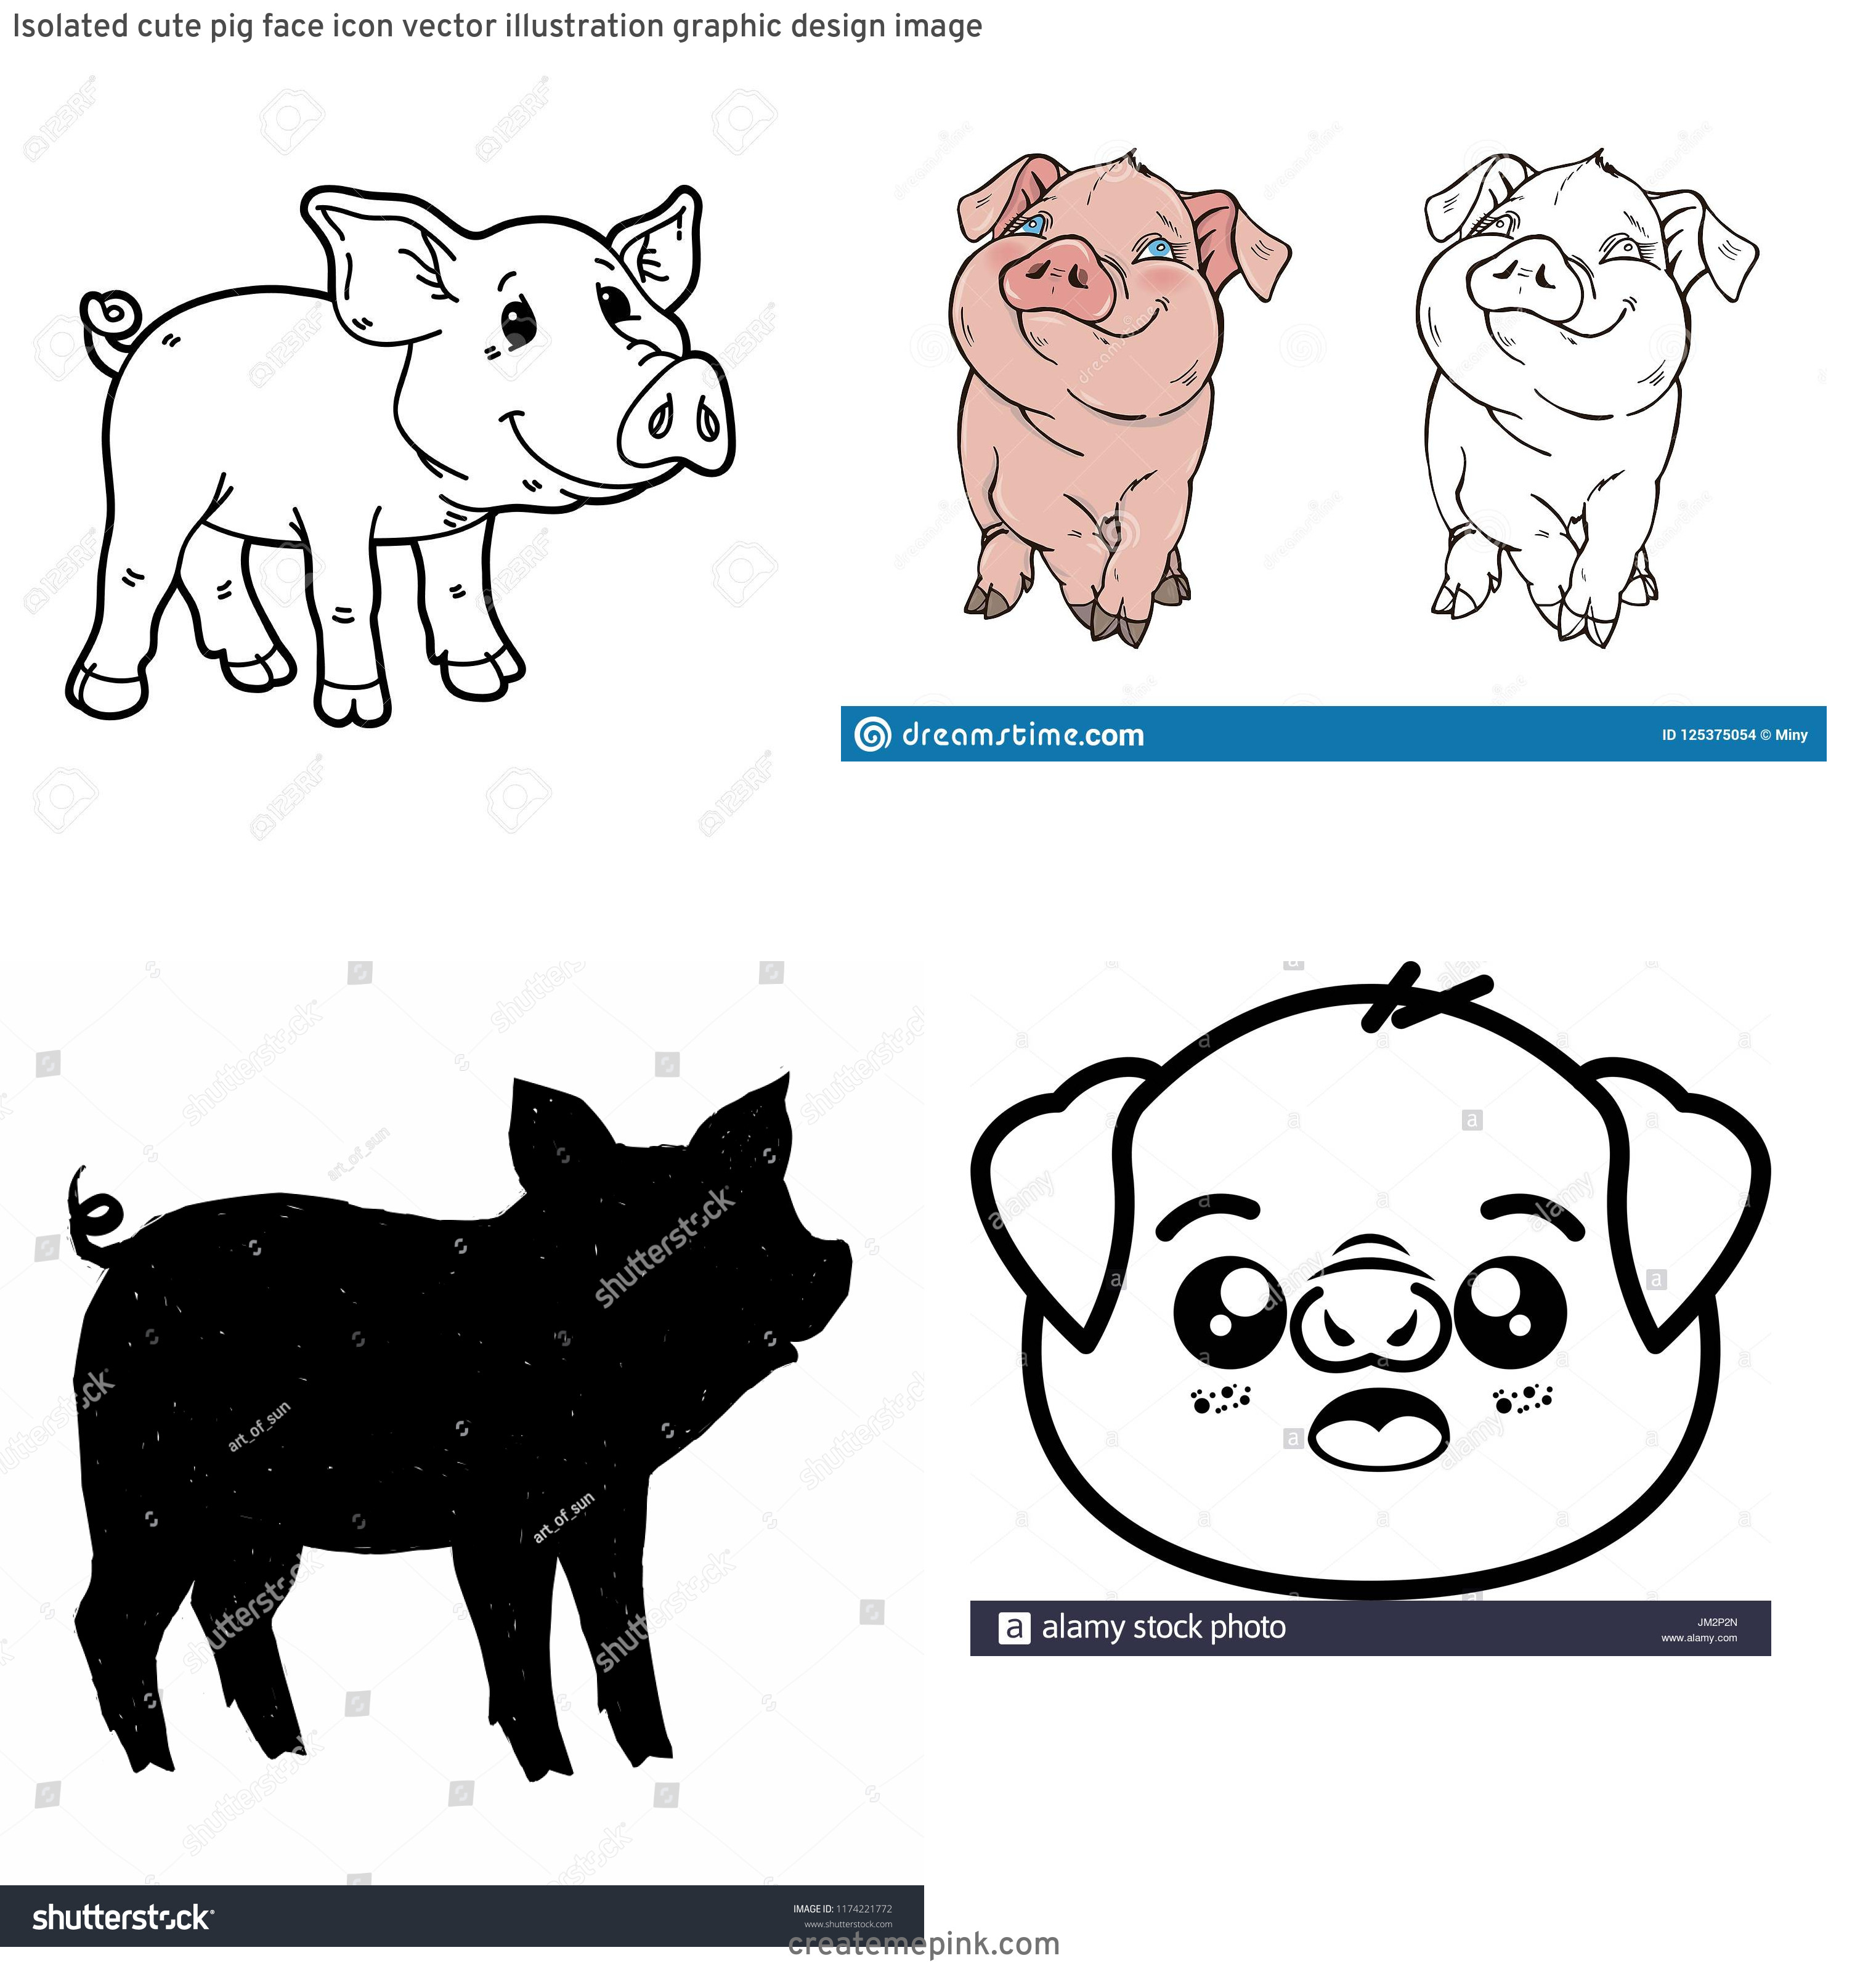 Cute Pig Vector Black And White: Isolated Cute Pig Face Icon Vector Illustration Graphic Design Image